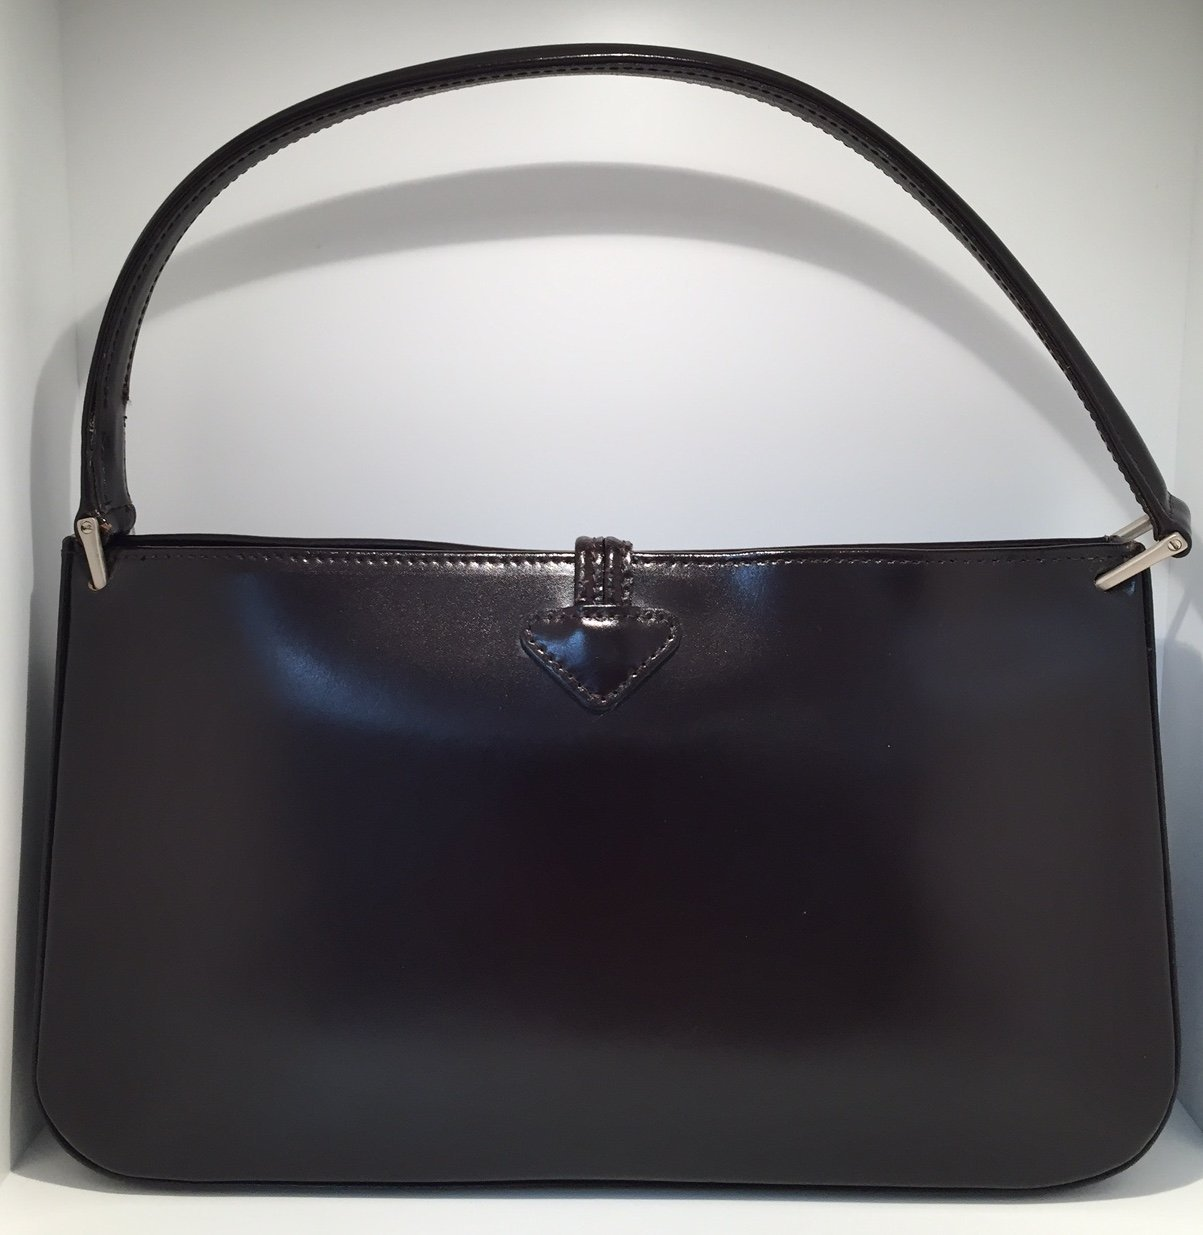 Vintage Longchamp Handbag, SOLD